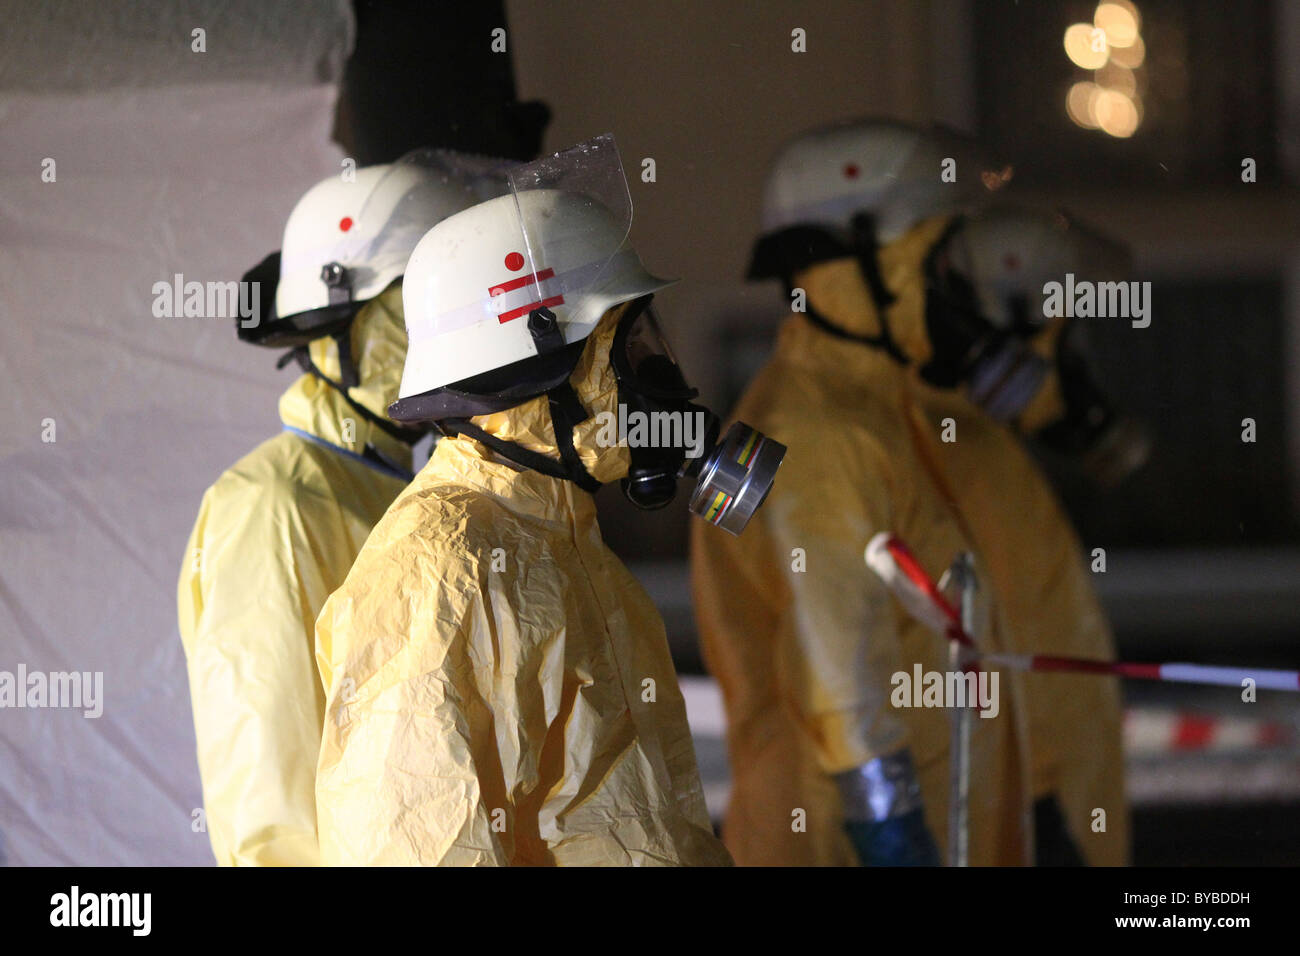 Firefighters equipped for containment of a hazardous substances wearing protective clothing, helmets and respirator - Stock Image